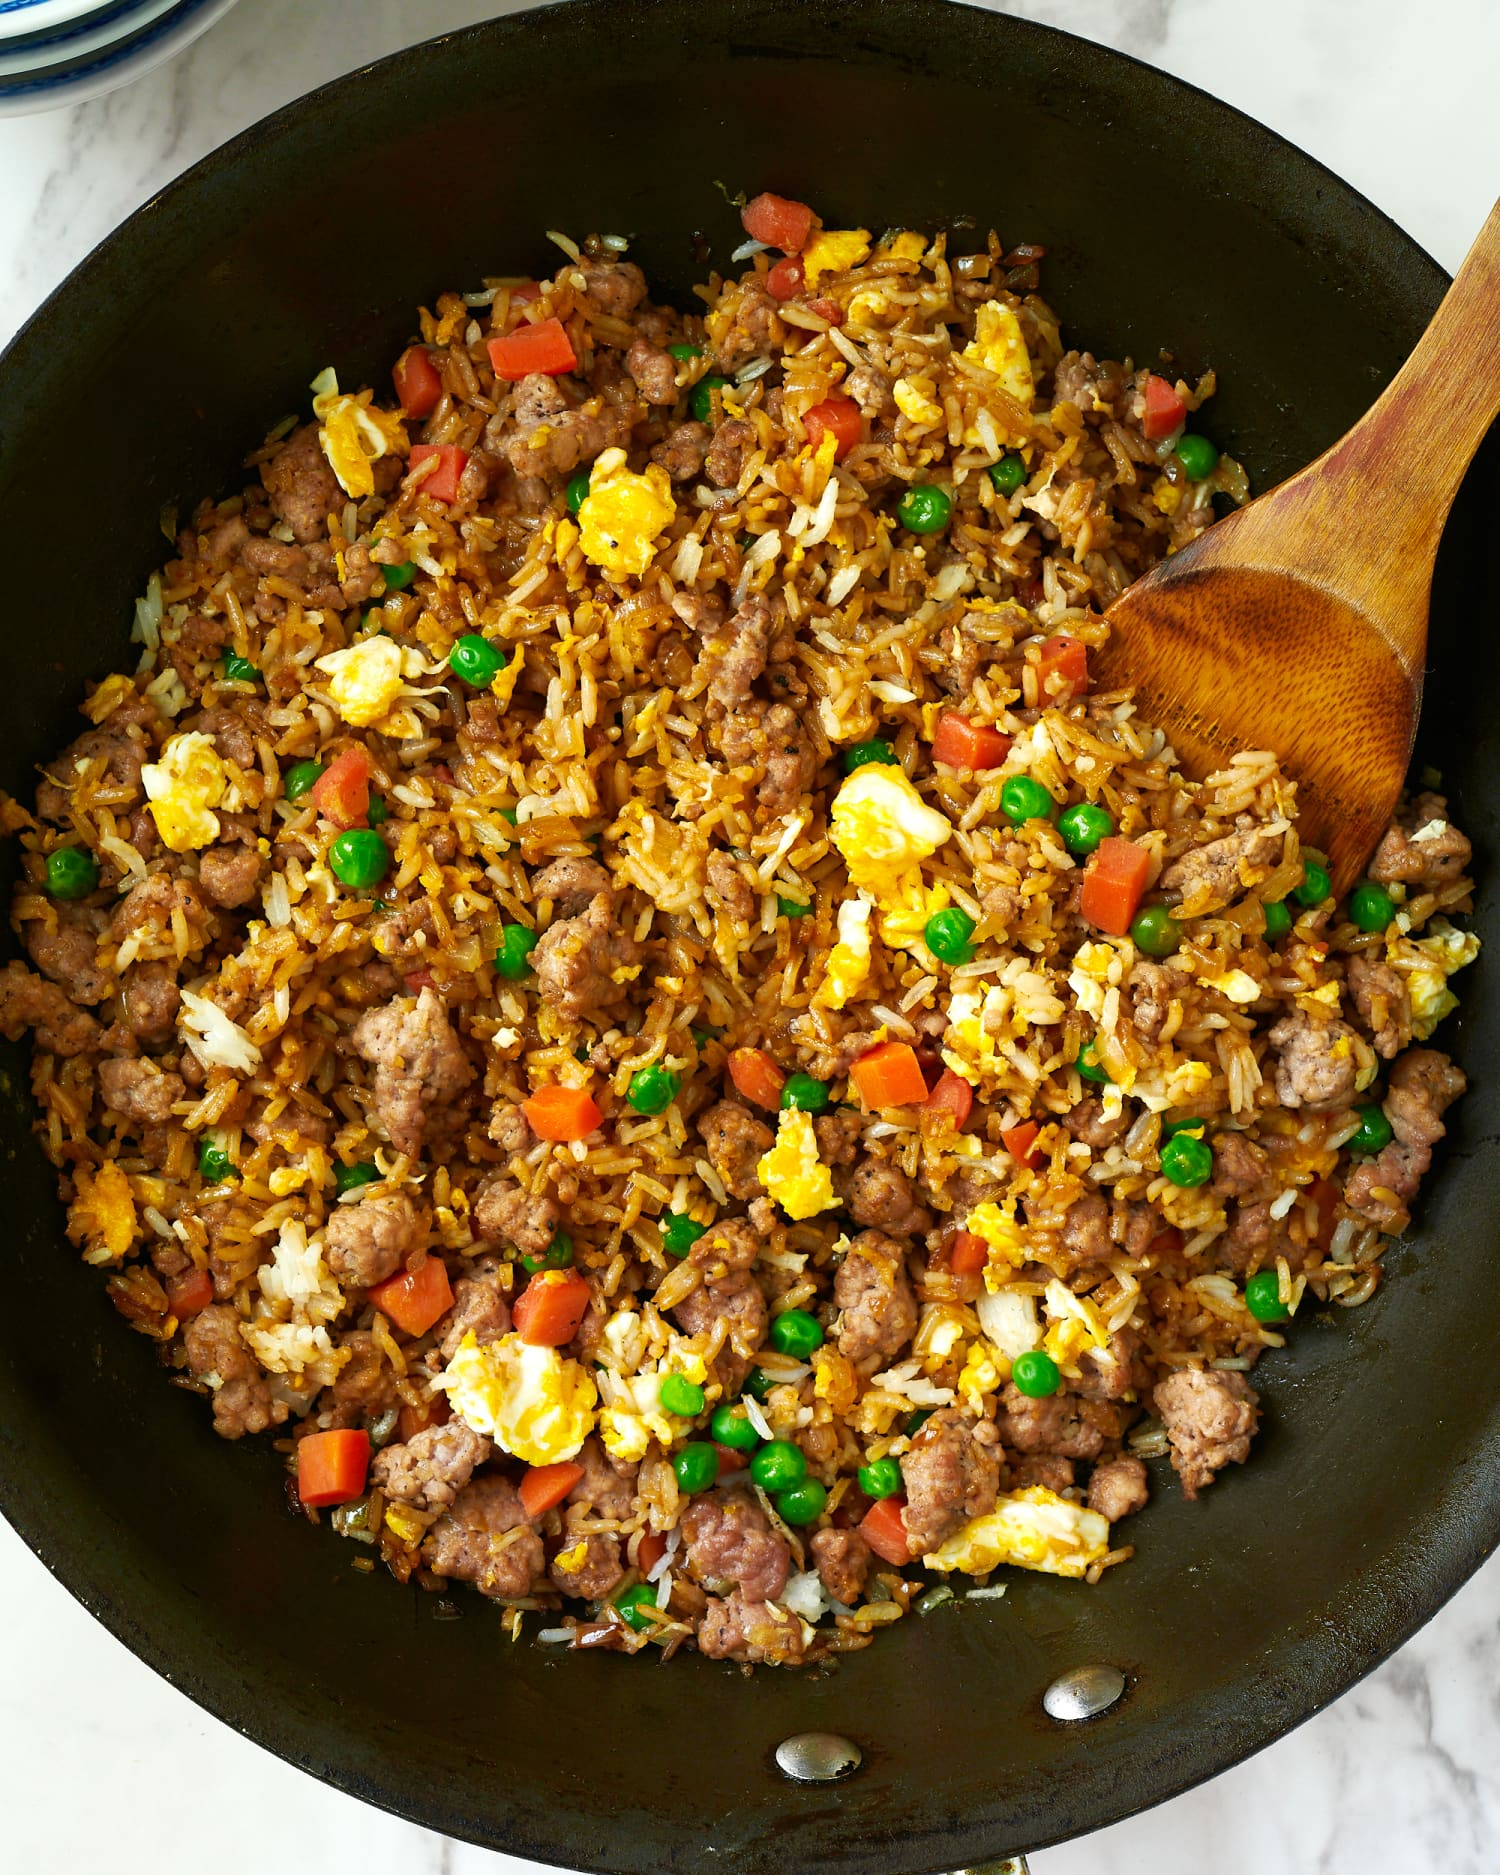 This Pork Fried Rice Is Ready in 15 Minutes